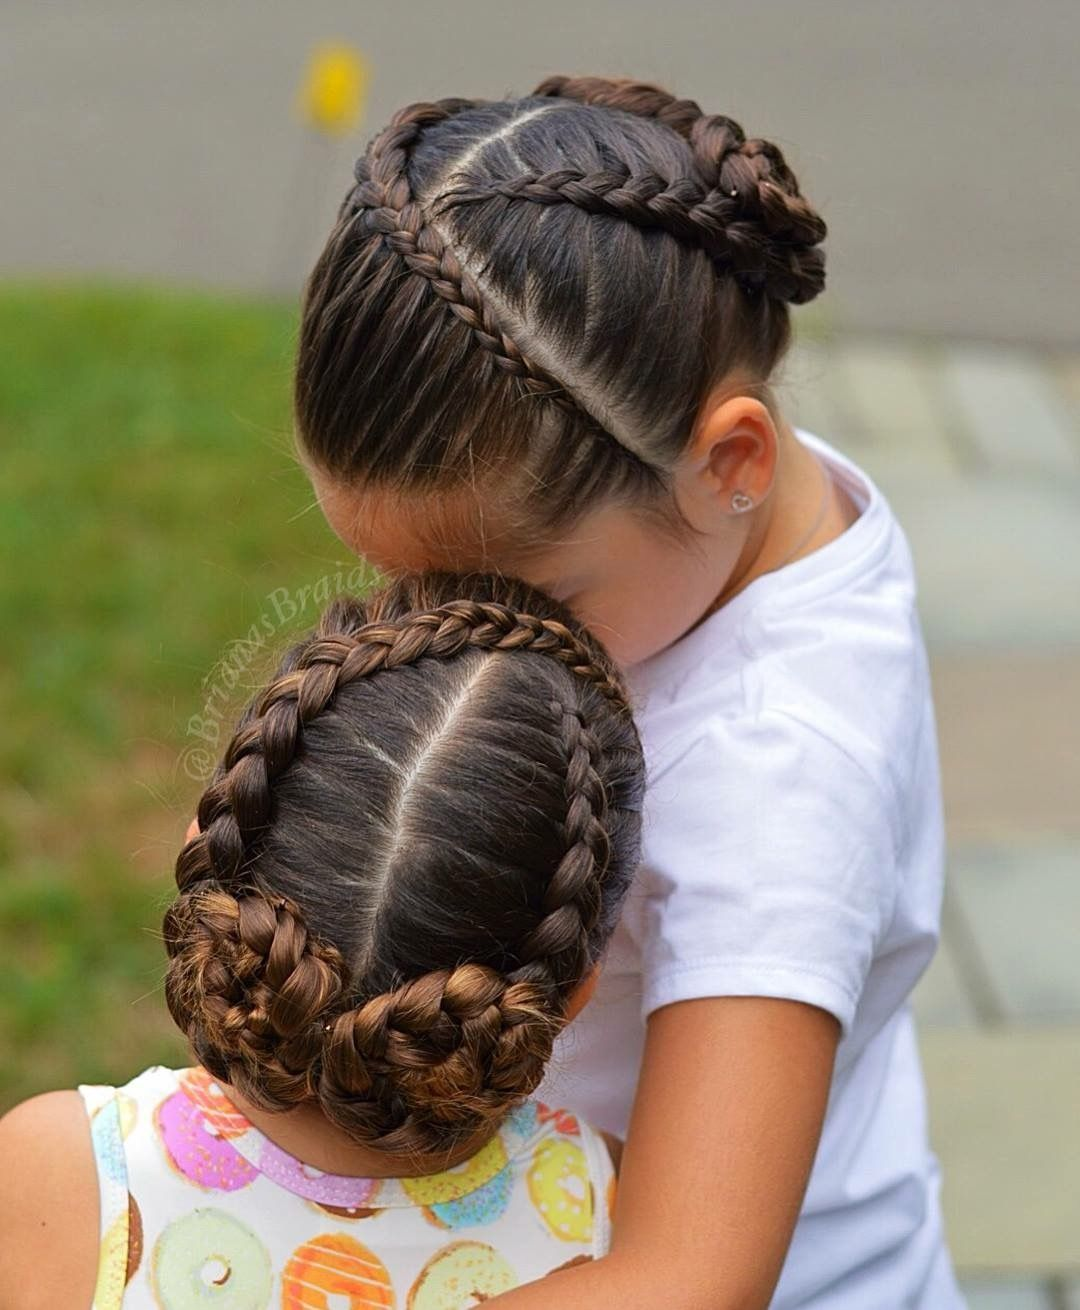 Cute Short Haircuts Easy Hairstyles For School Braided Hair Styles For Little Girls Braided Hairstyles Hair Styles Short Hair Haircuts